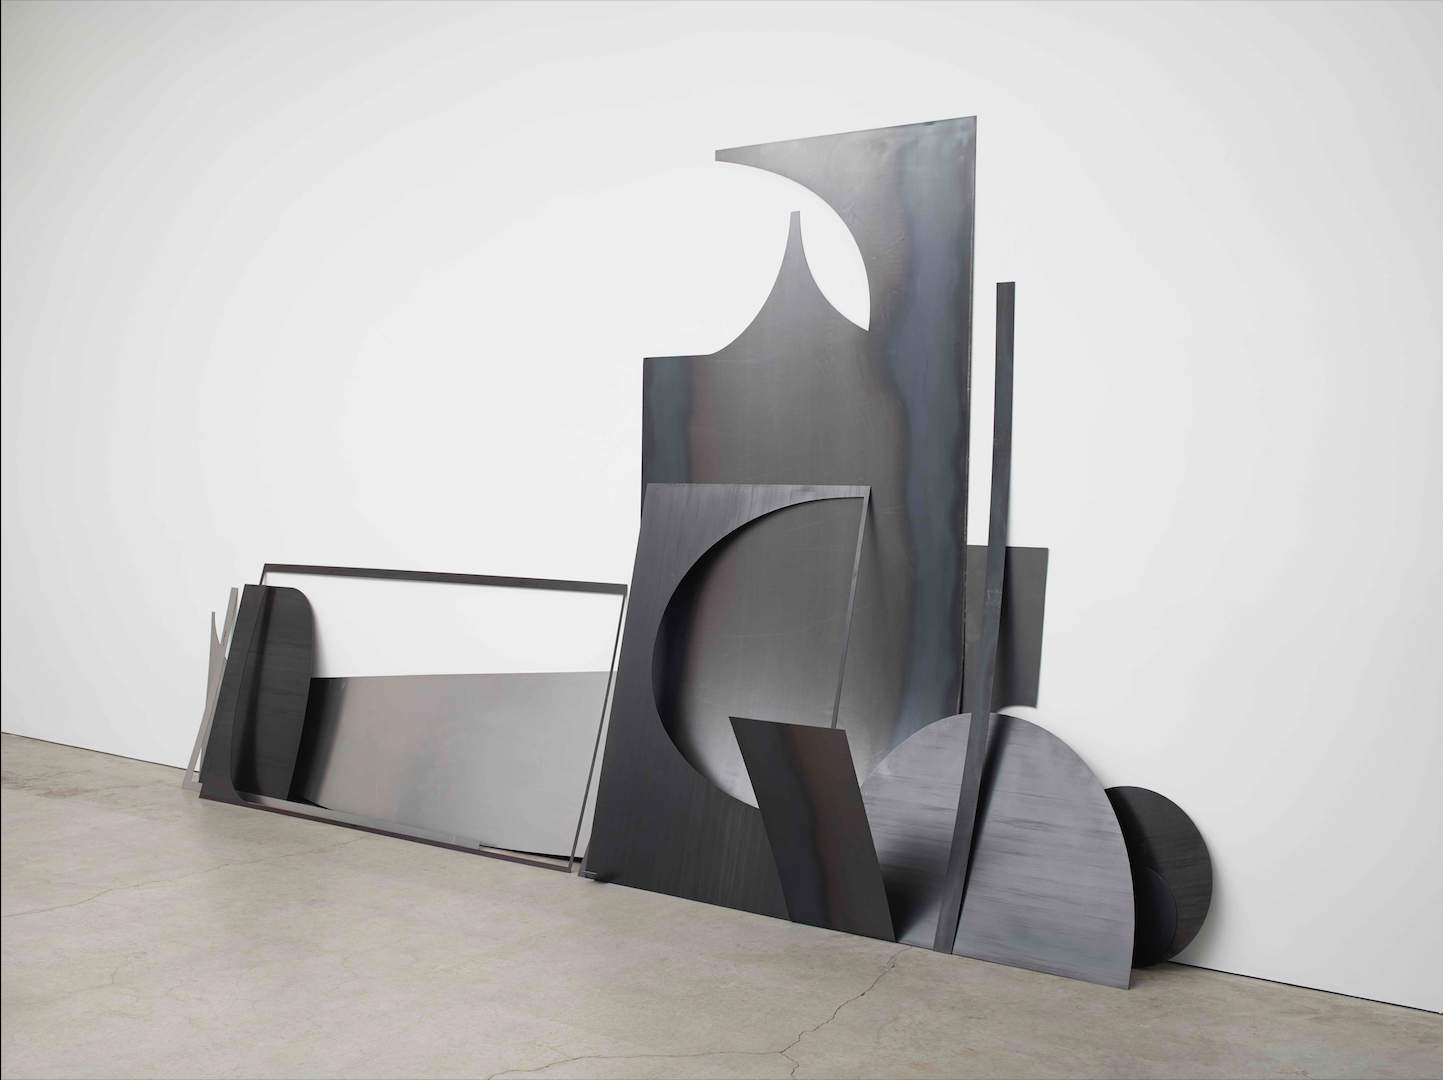 Erin Shirreff  Drop (no. 14)  2015 Hot-rolled, cold-rolled, and Cor-ten steel 117 ¼h x 214 ½w x 34d in